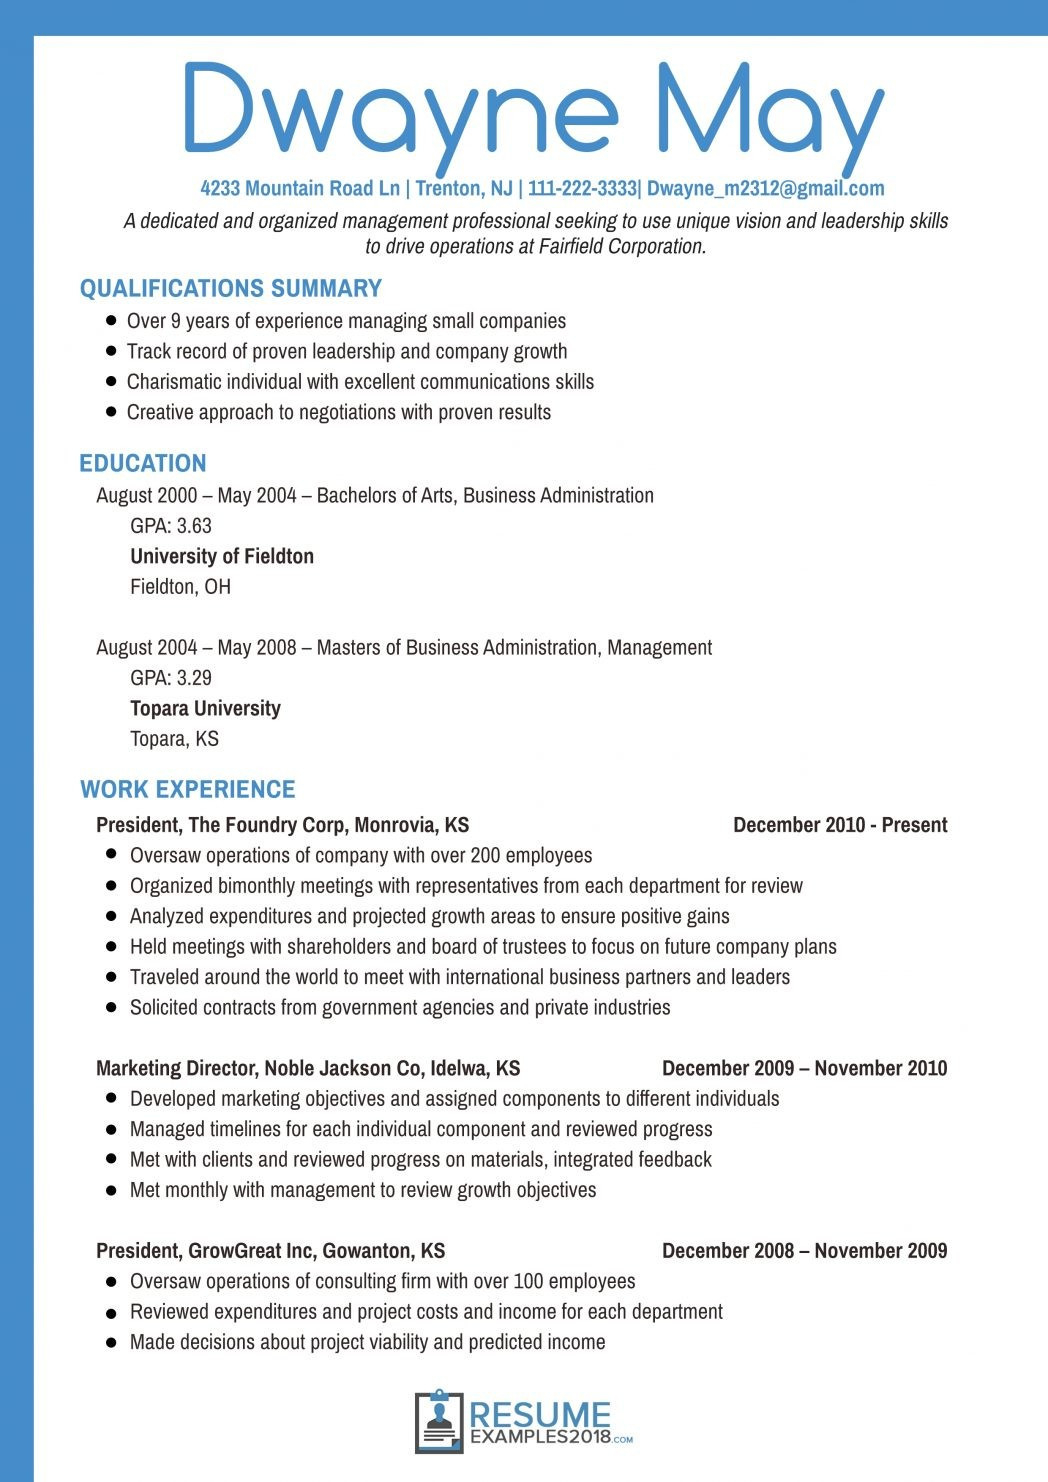 Contract Manager Resume - Government Contract Manager Resume Lovely Resume Template Resume